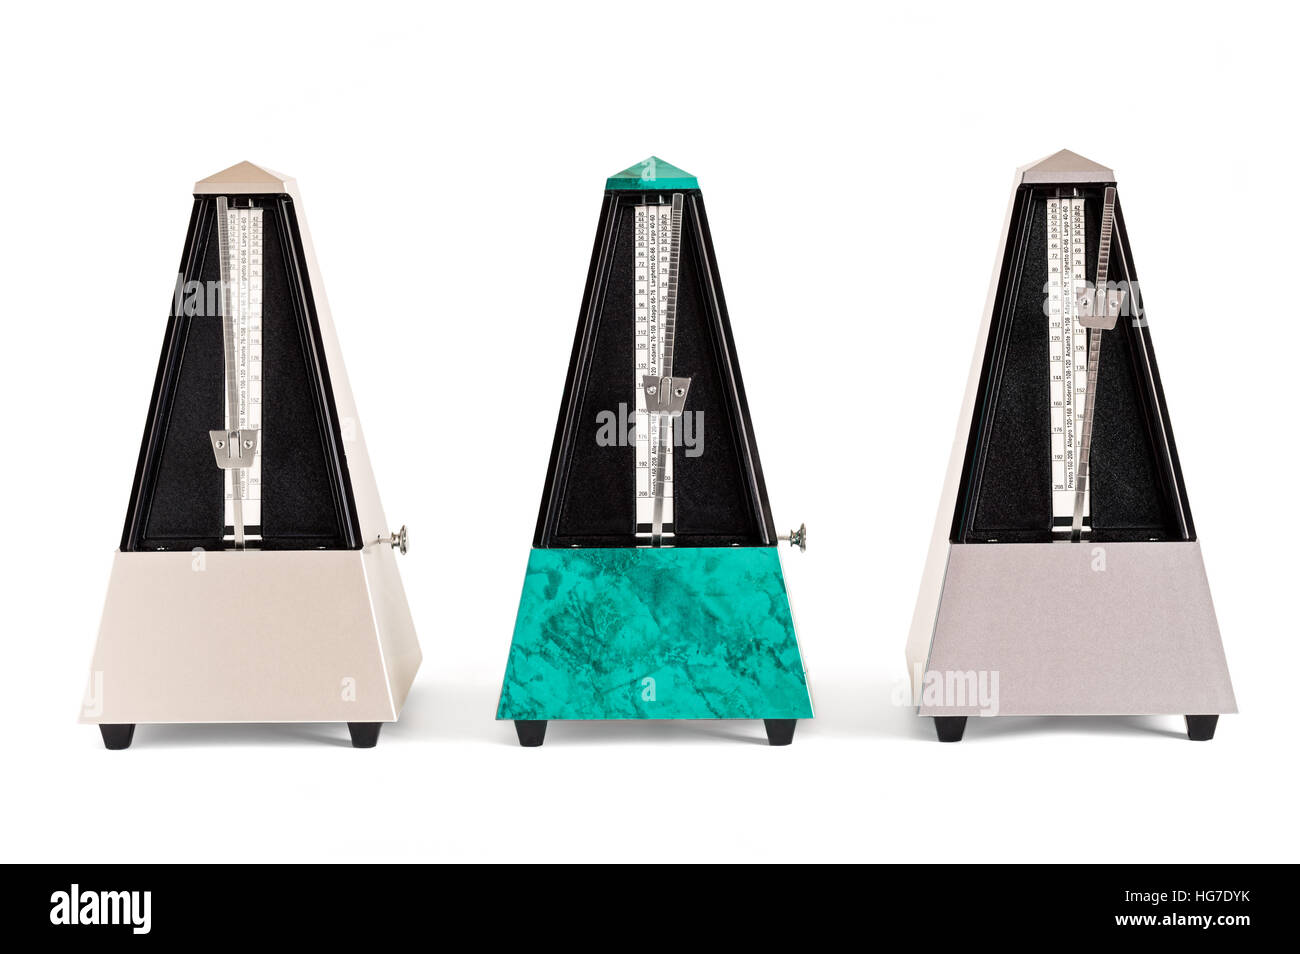 Three pyramid shaped metronomes in plastic housing isolated on white - Stock Image